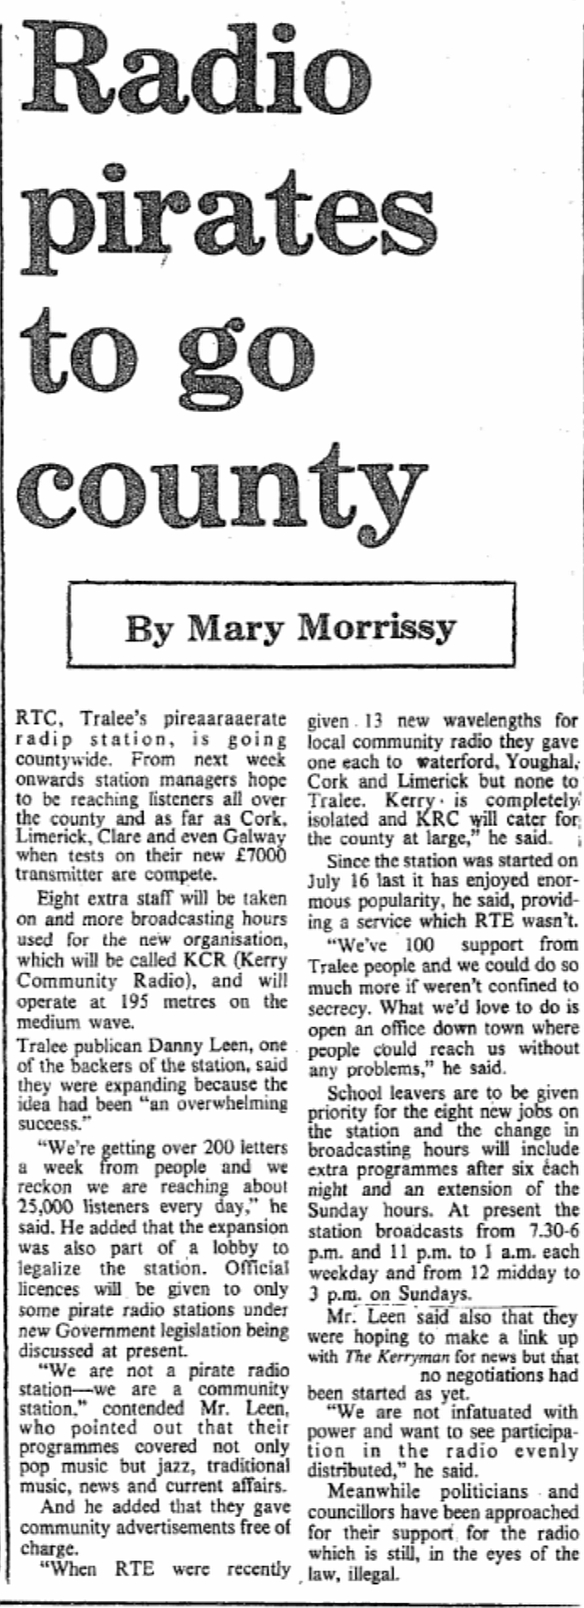 Radio pirates to go county was a headline in The Kerryman dated December 8th 1978